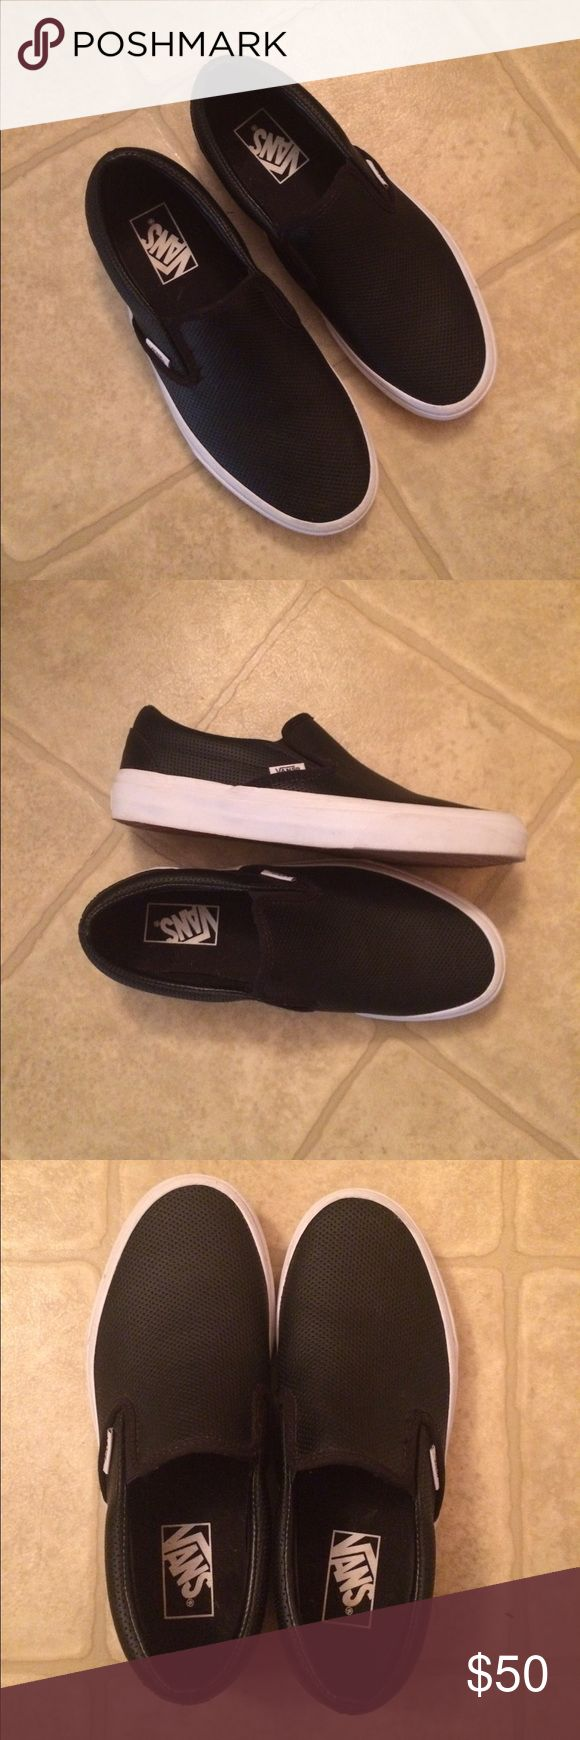 Vans Perforated Leather Slip-On shoe Classic Vans slip on shoe made from black perforated leather. Only worn twice, so these are pretty much brand new. They were a size too big for me. Vans Shoes Sneakers